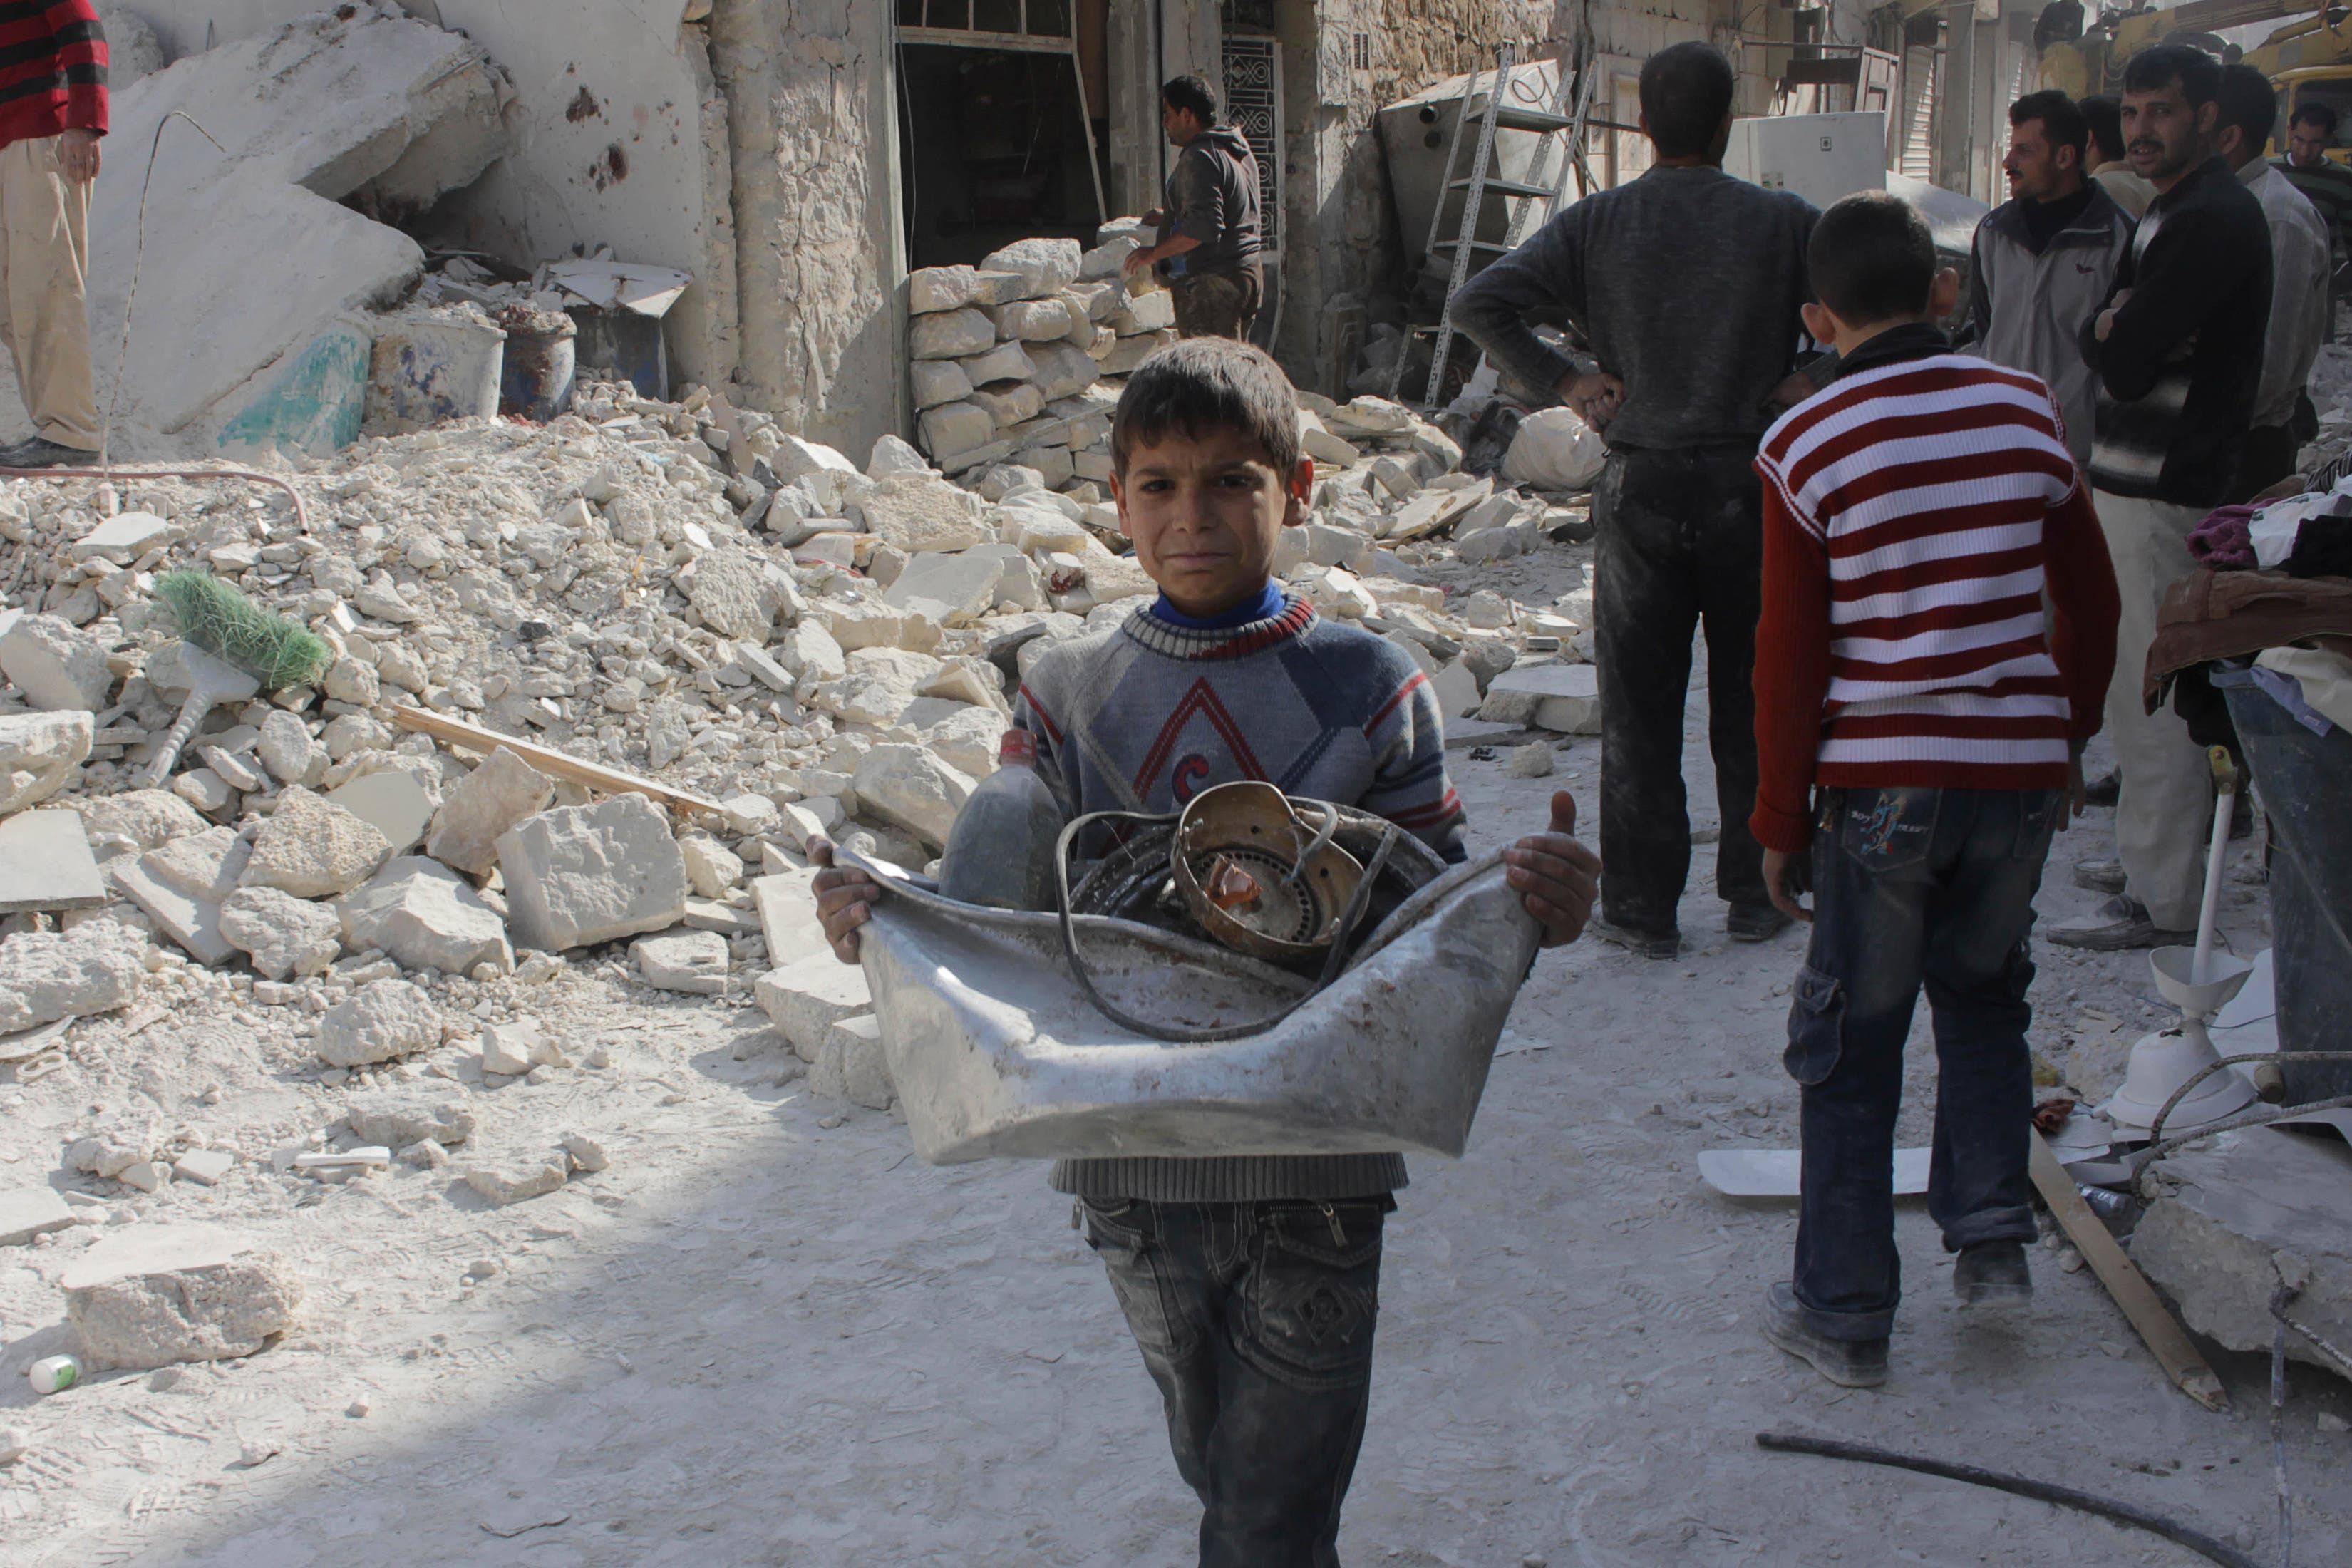 A boy collects his belongings amidst the rubble of collapsed buildings after what activists said was shelling by forces loyal to Syria's President Bashar al-Assad in Aleppo. (File photo: Reuters)